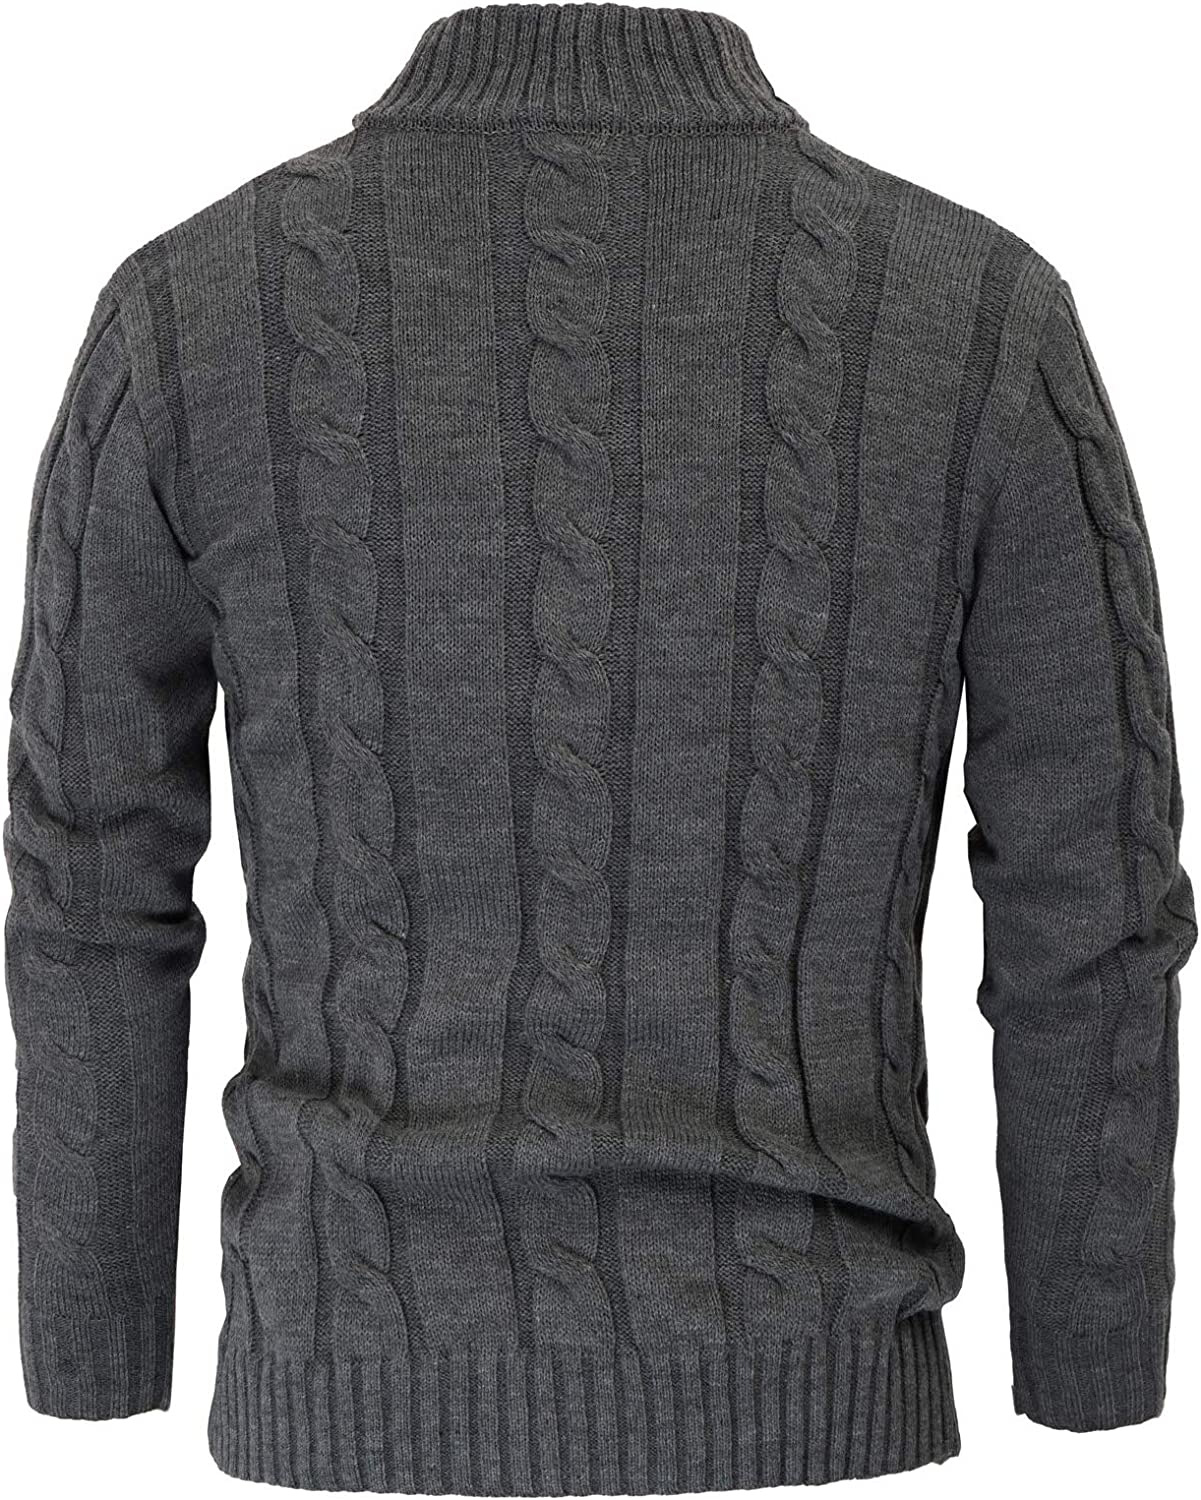 PJ PAUL JONES Mens Casual Stand Collar Cable Knitted Button Down Cardigan Sweater